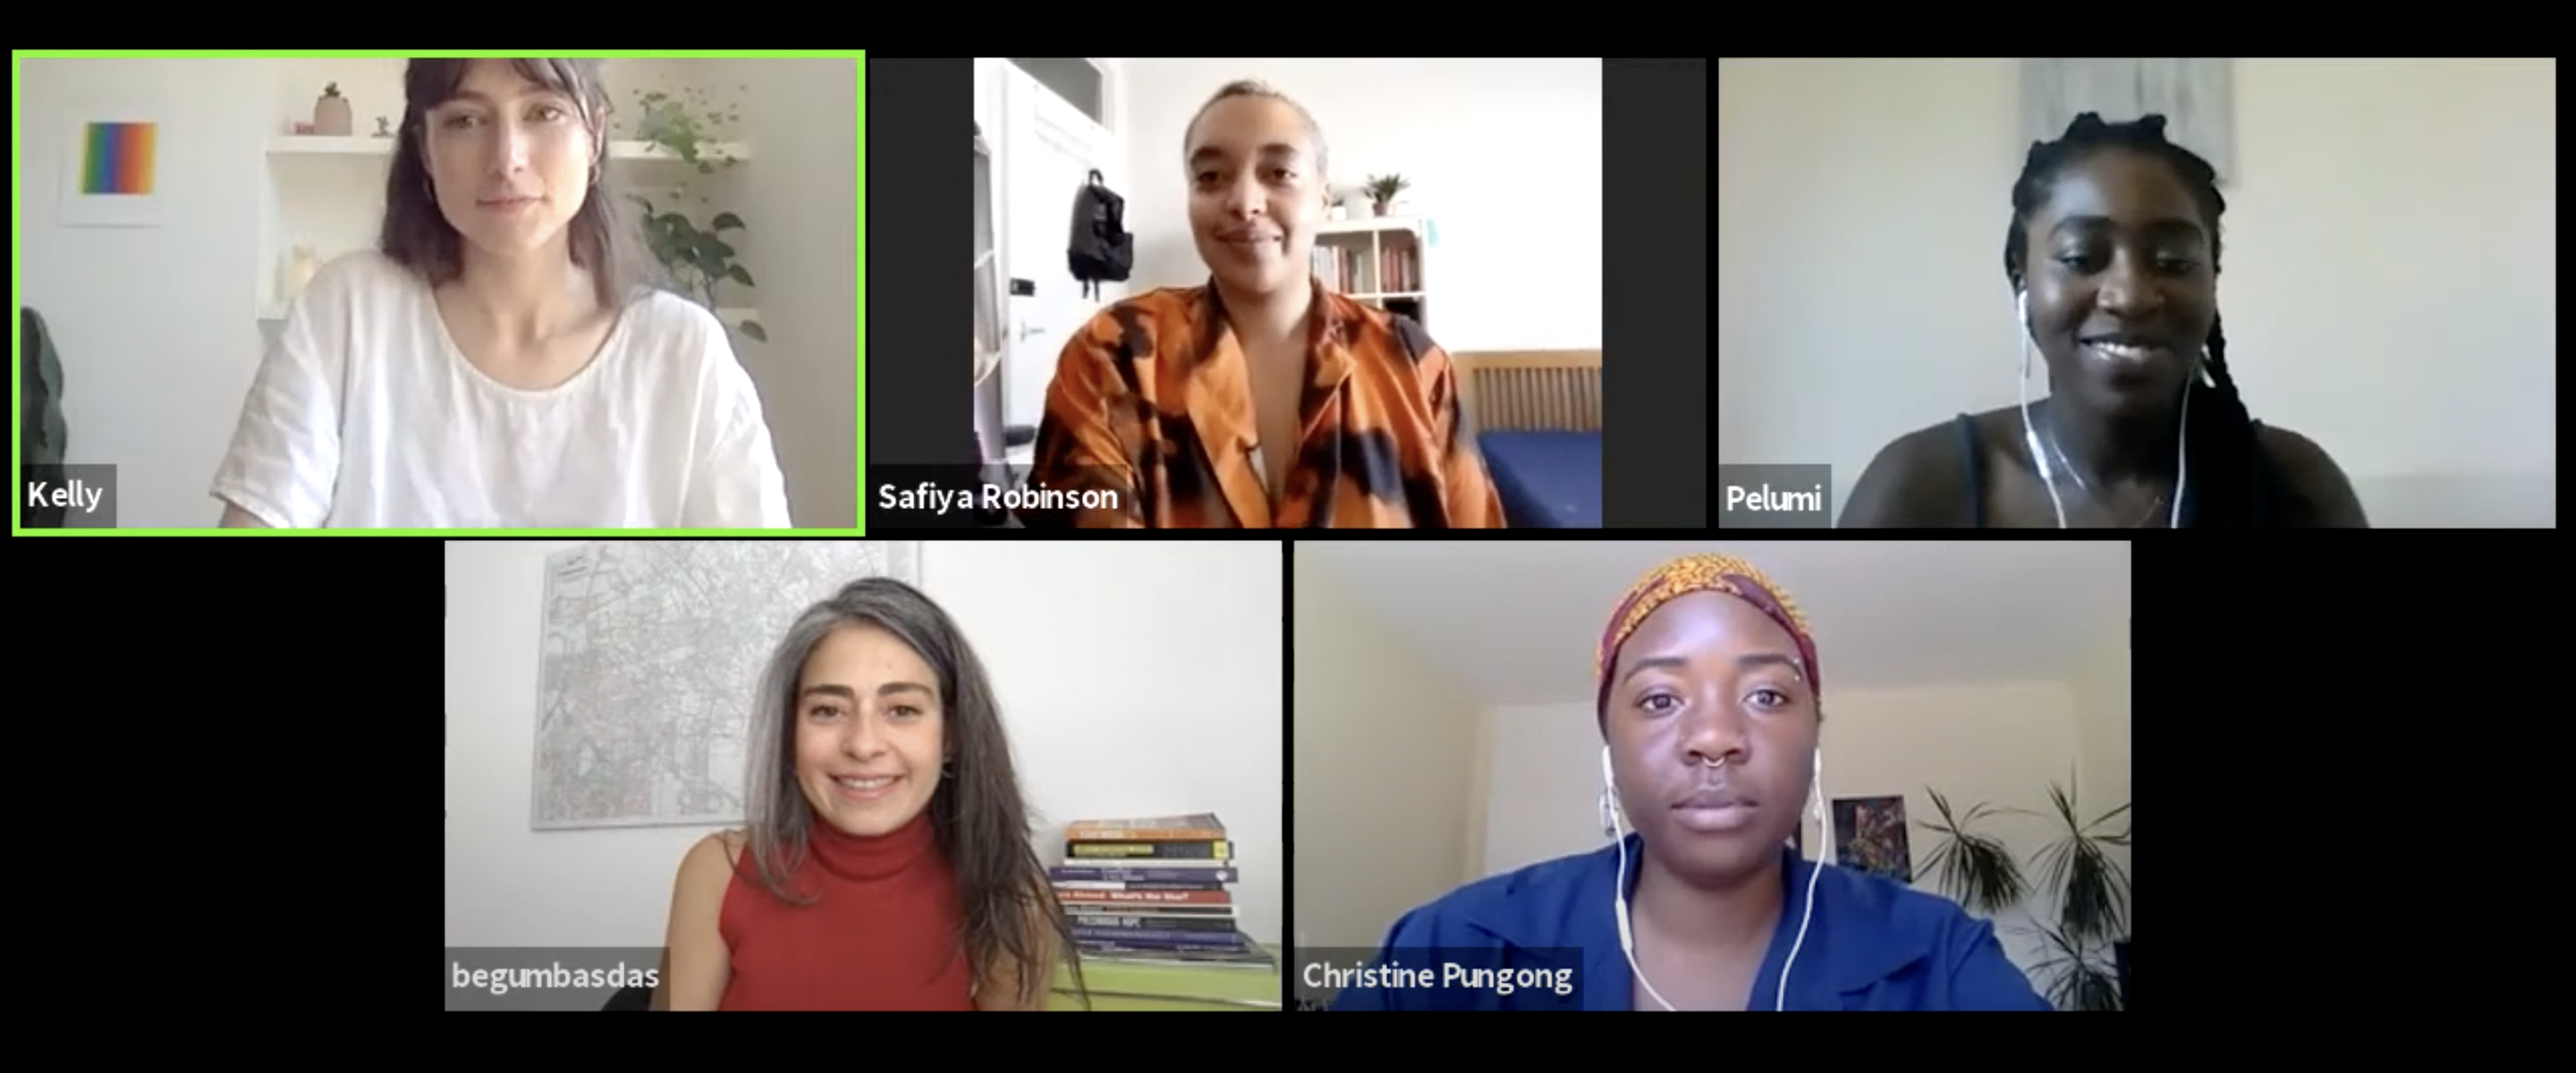 five participants in the live panel discussion on radical care in the pandemic